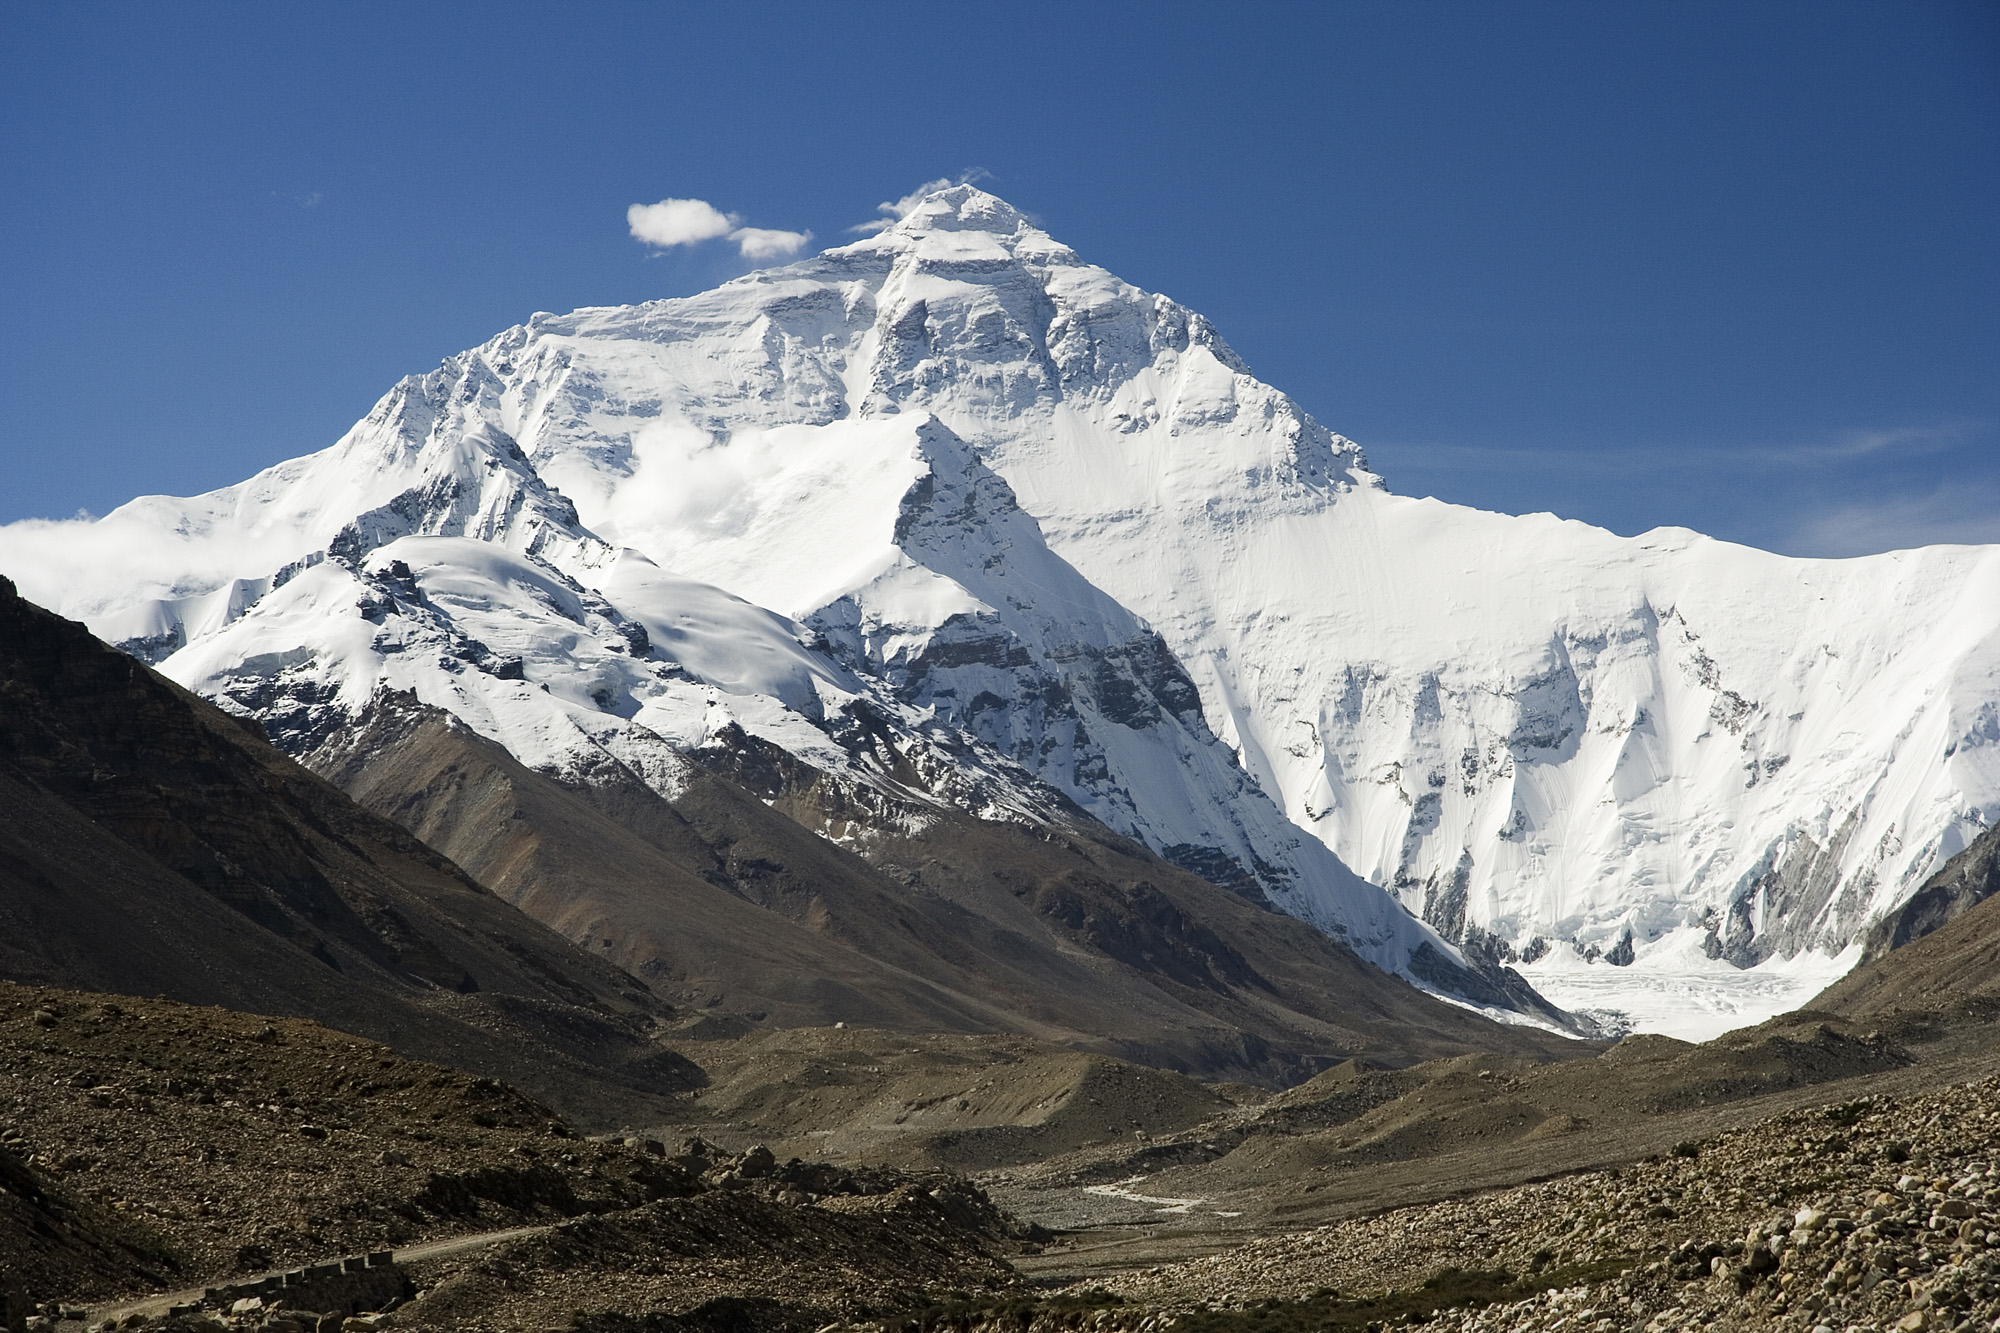 Everest (8.848 m). Fuente: Wikimedia Commons.